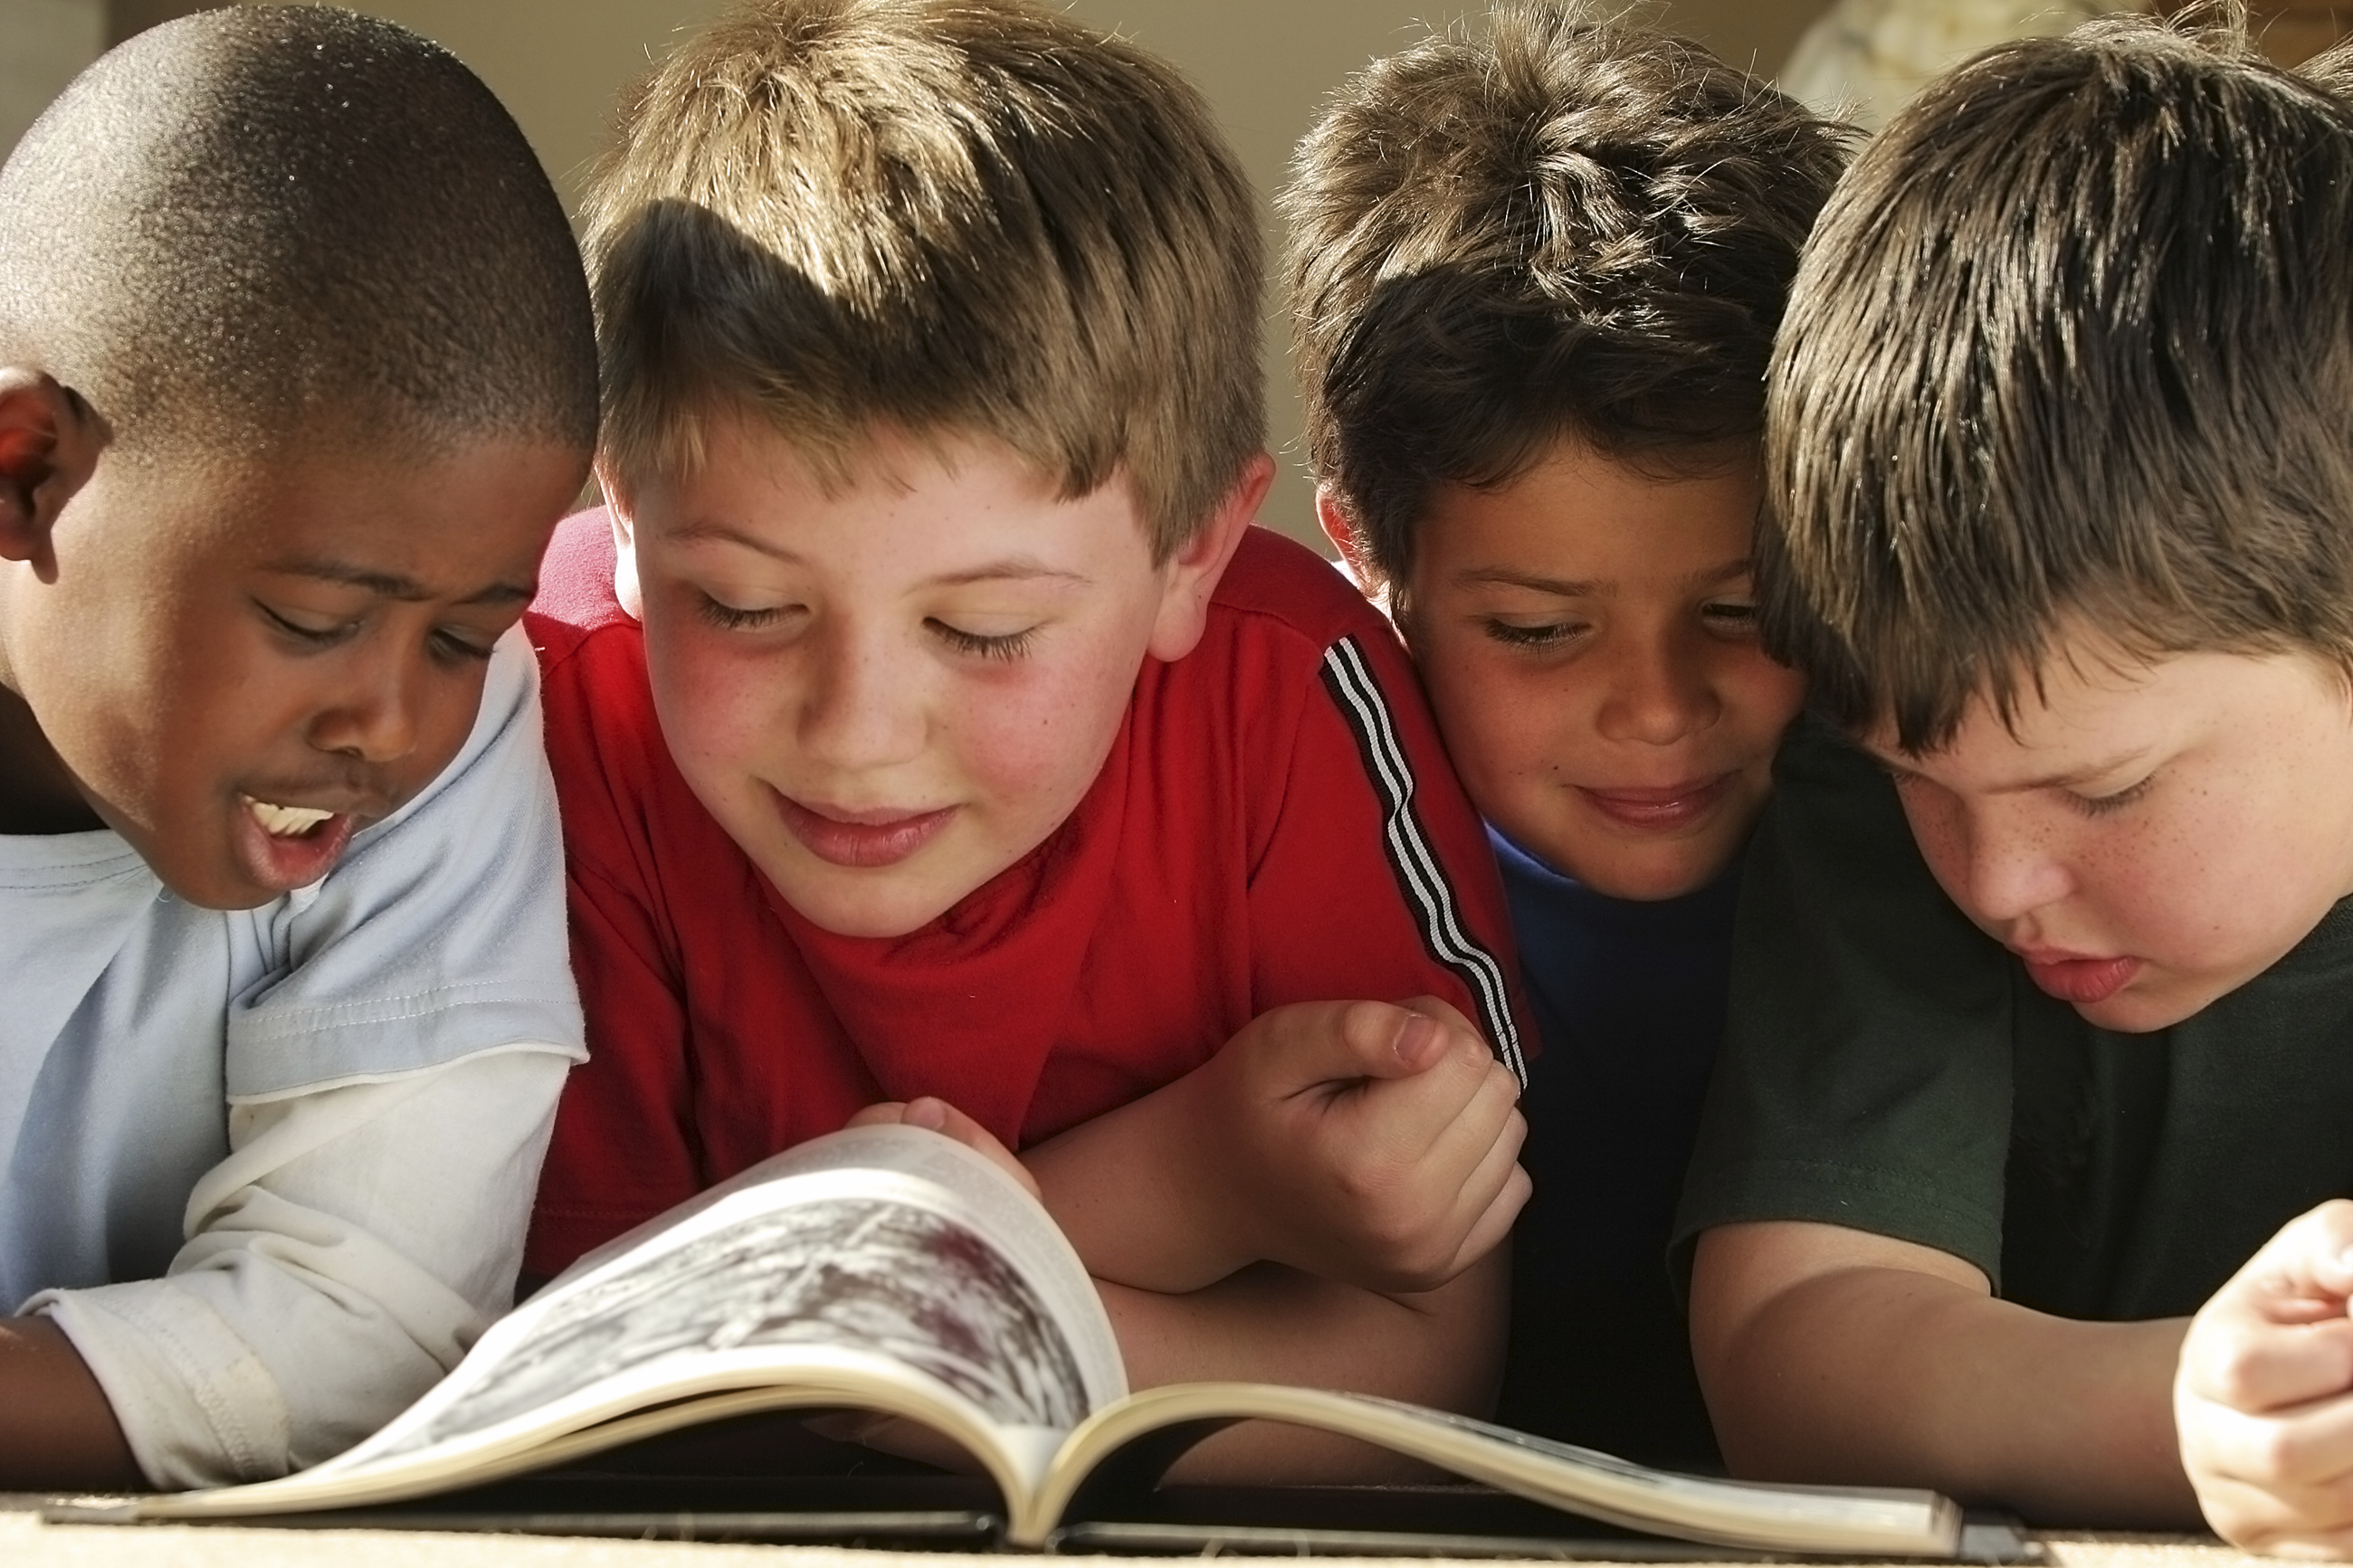 Close up photo of 4 boys leaning over a table reading a magazine